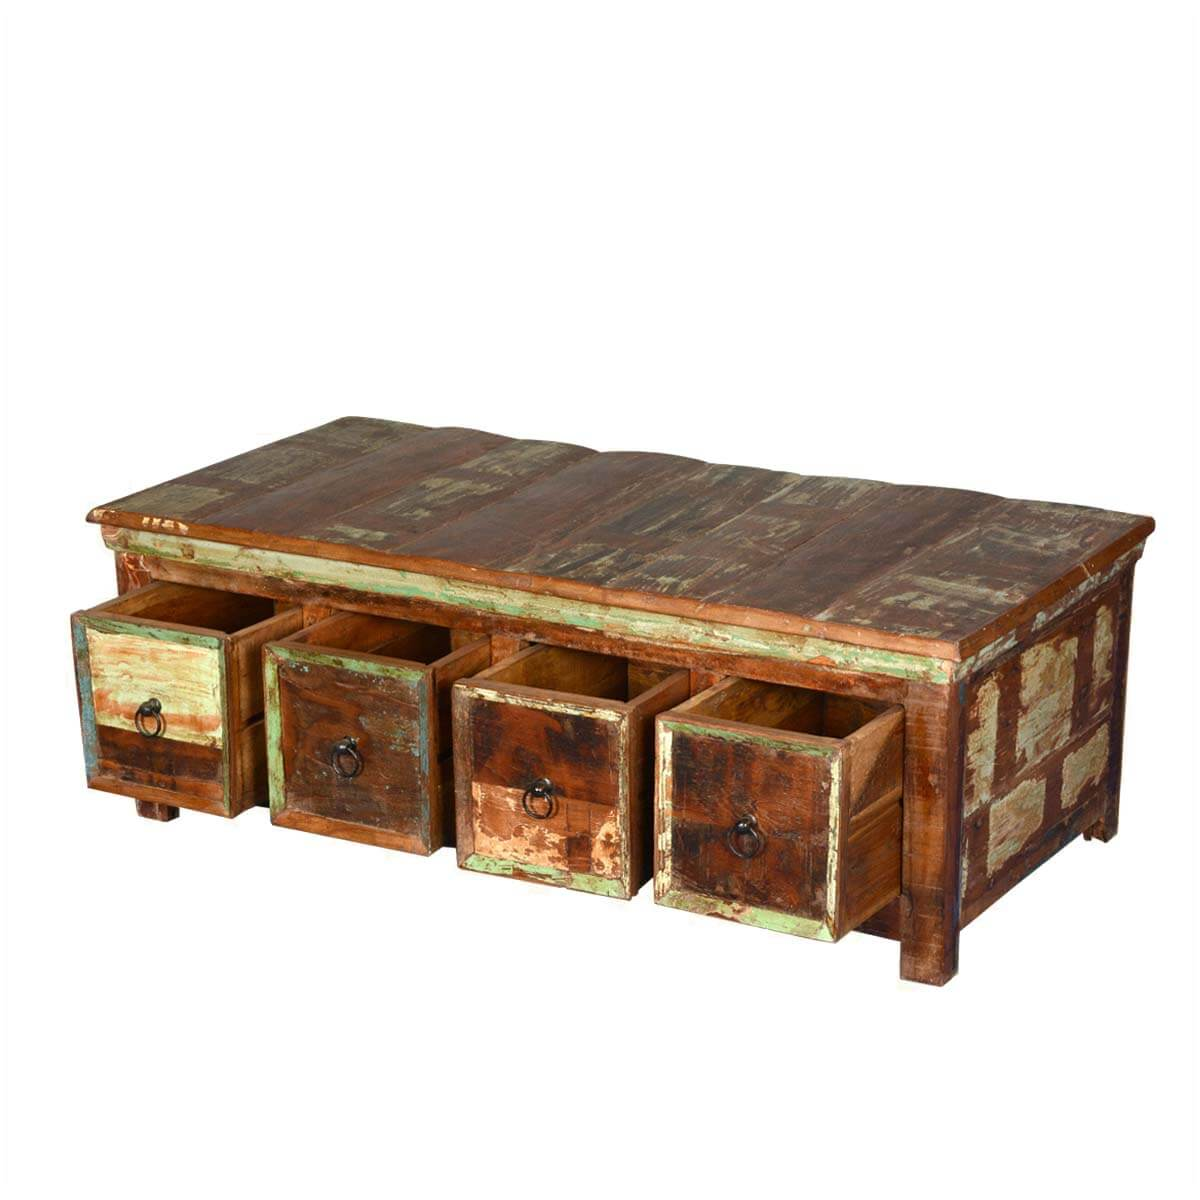 Rustic reclaimed wood coffee table with storage drawers furniture Coffee tables rustic